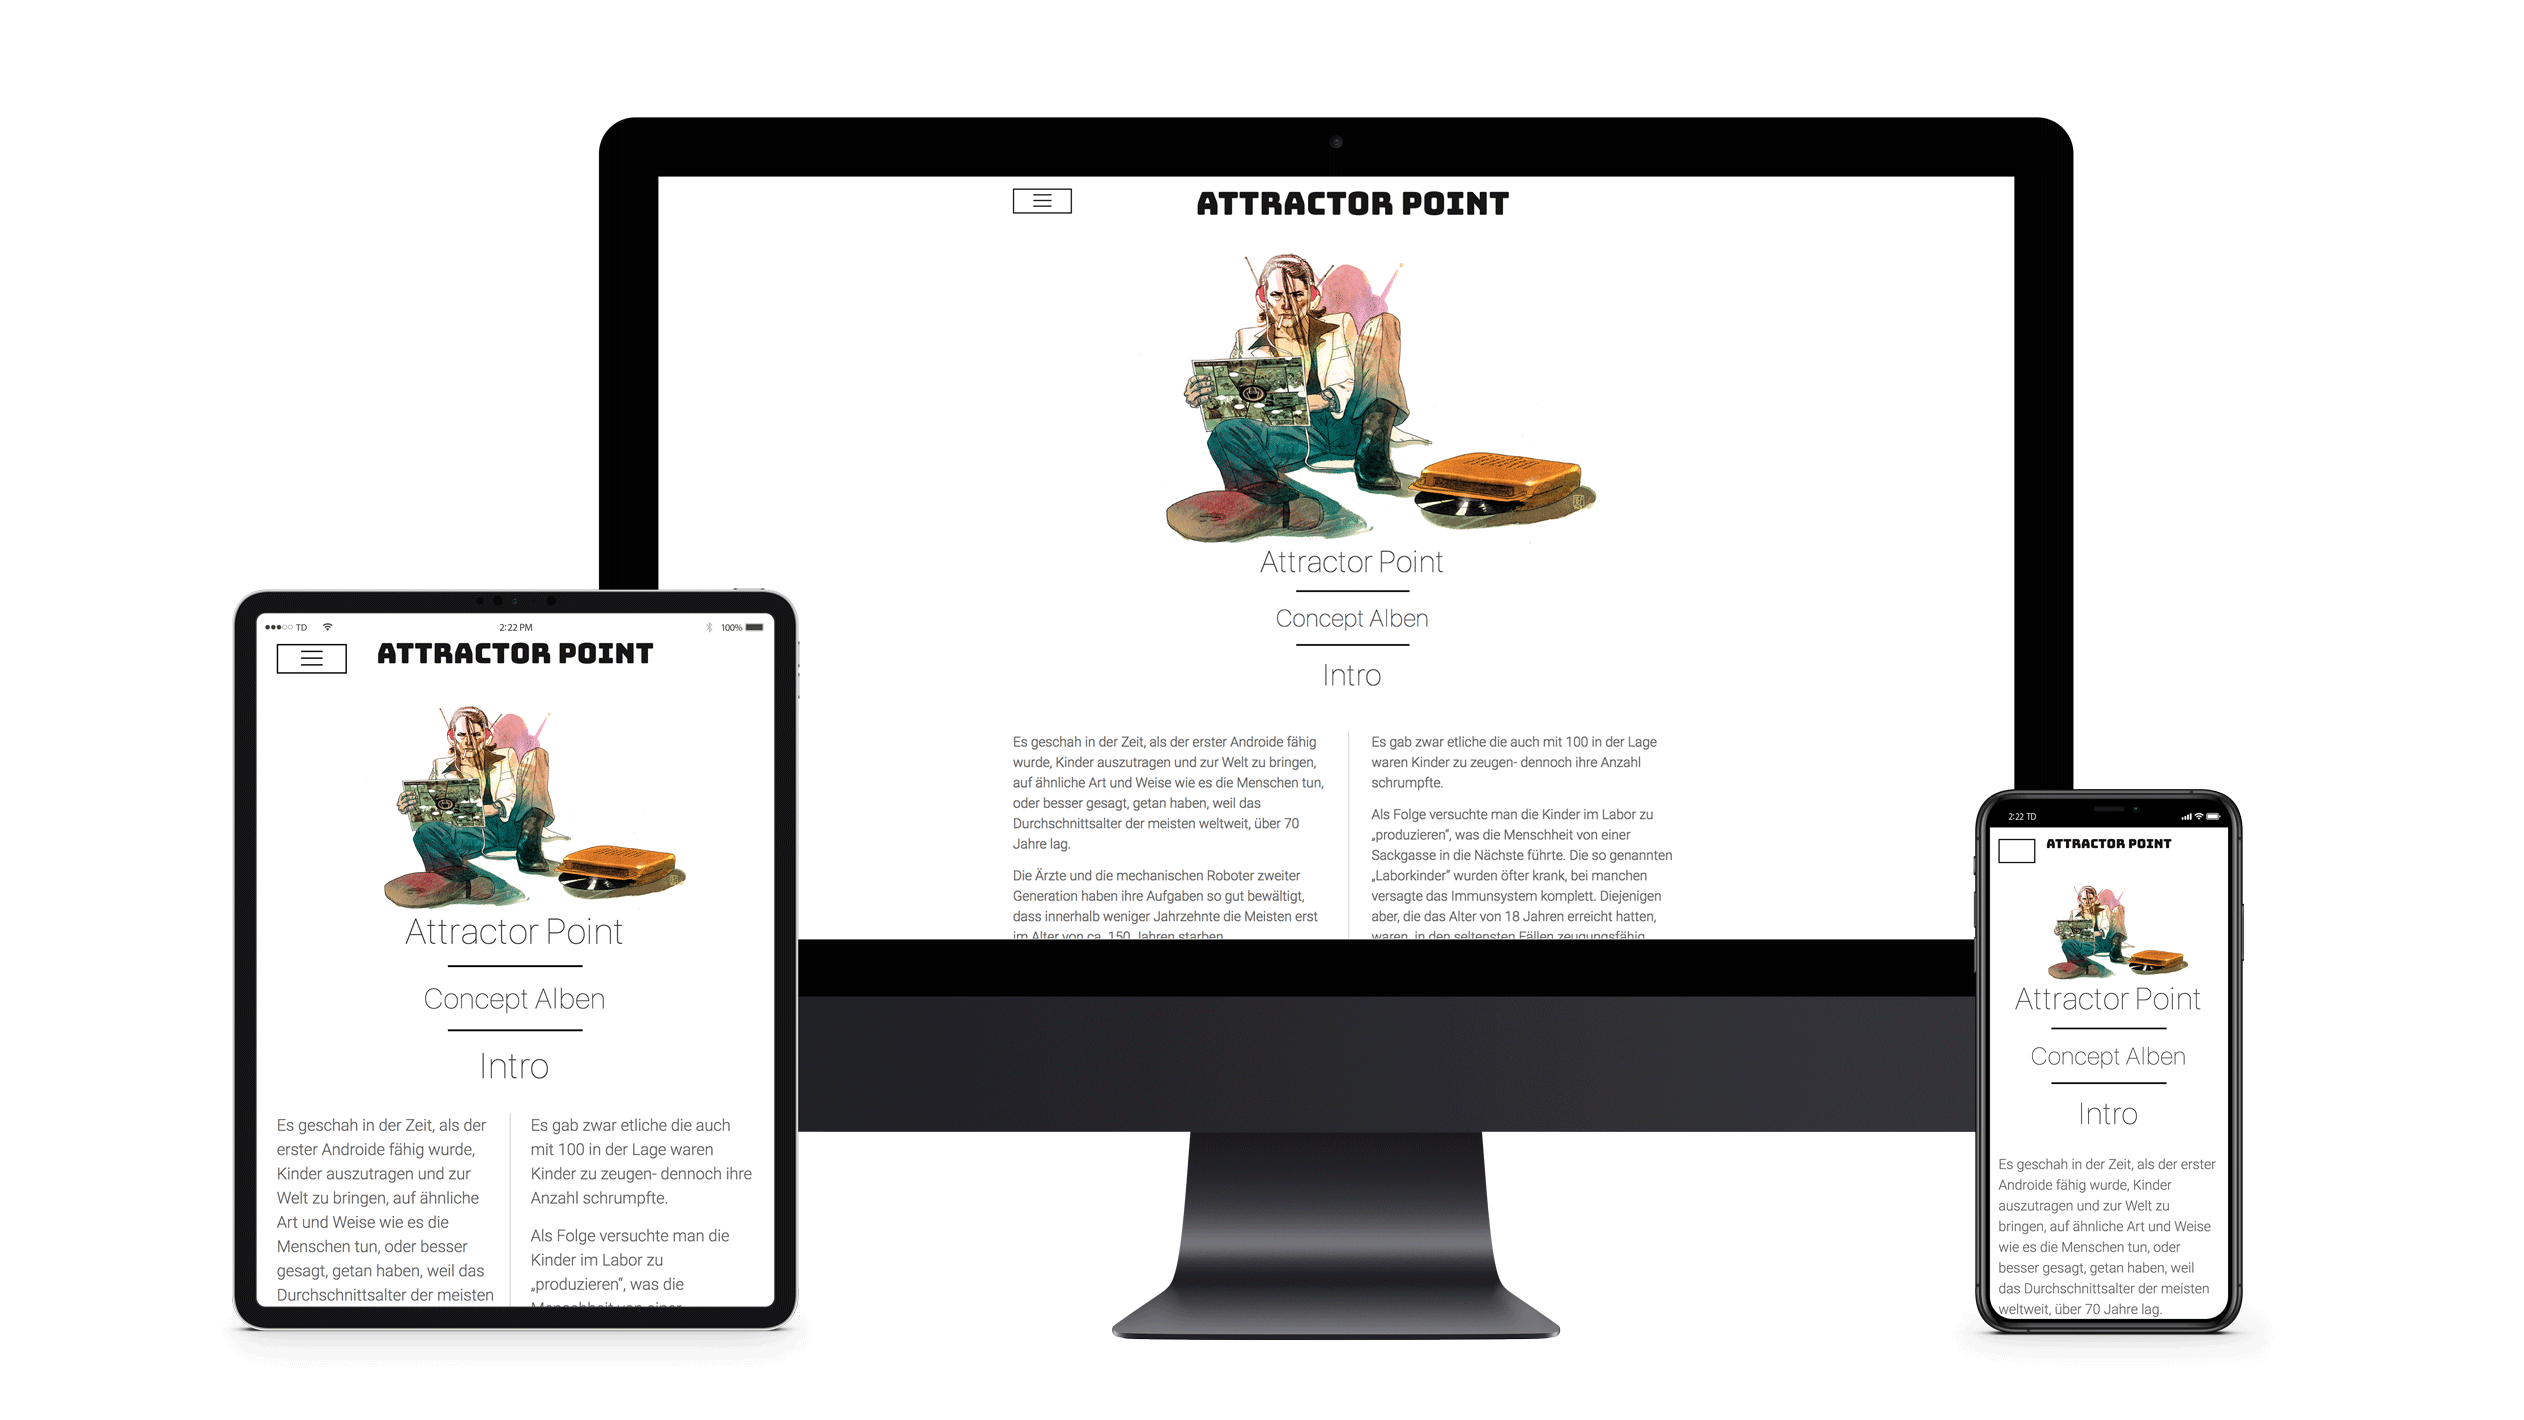 Attractor-point-responsive-website 2019 1 1